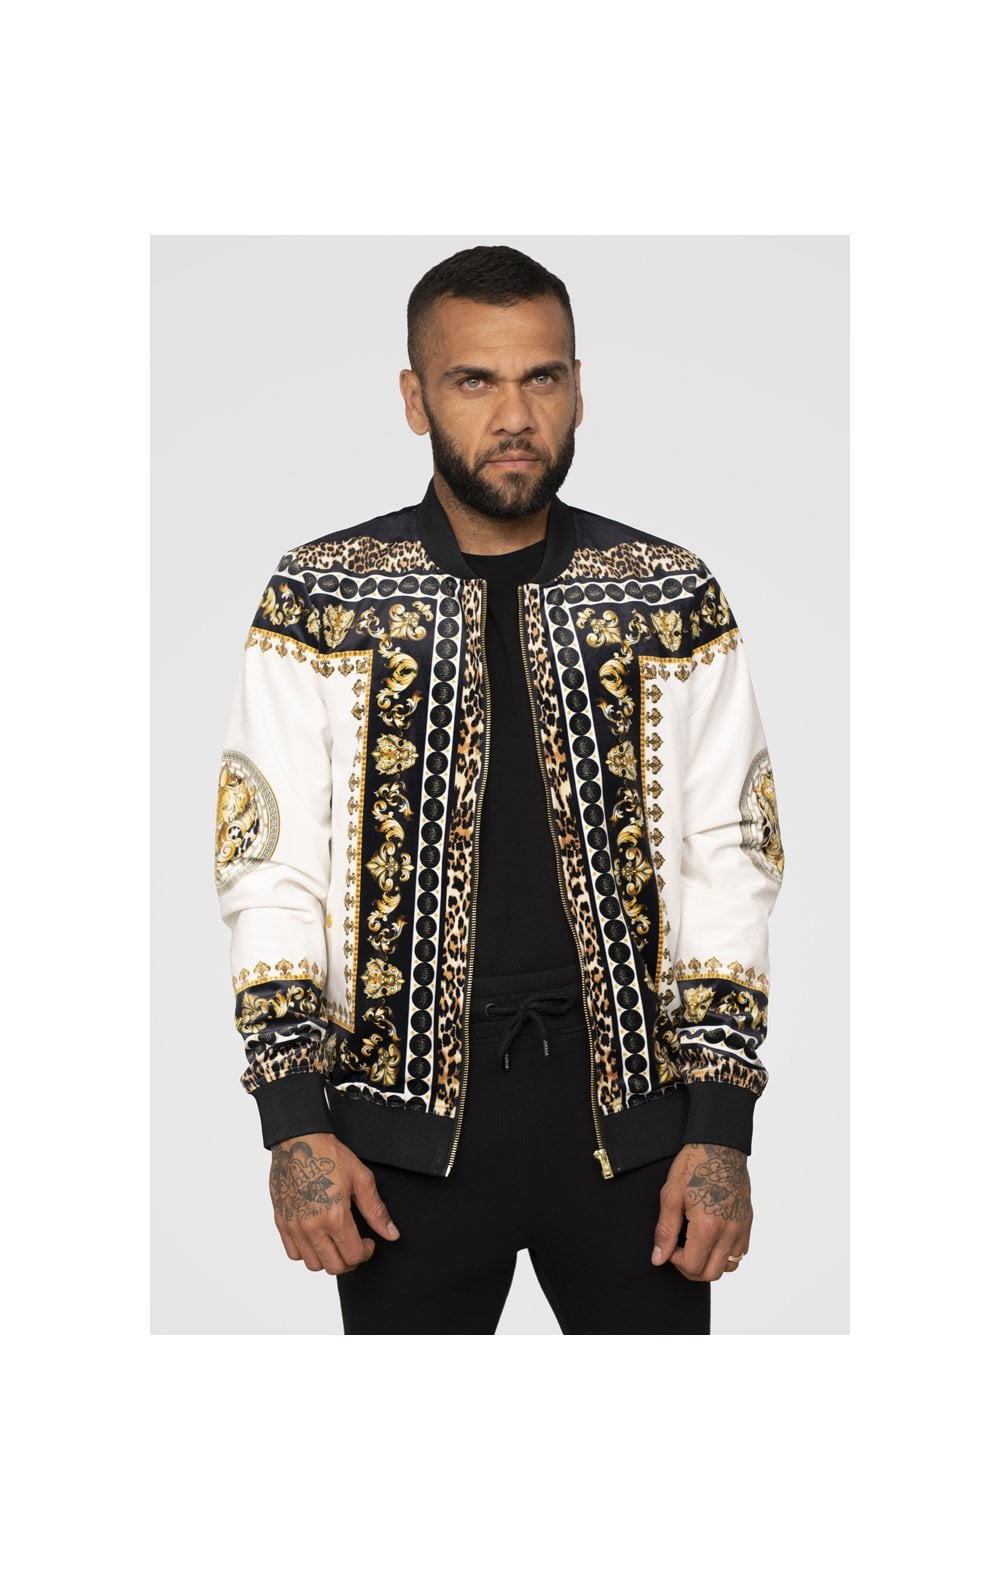 Load image into Gallery viewer, SikSilk x Dani Alves Bomber Jacket - Black, Off White & Gold (2)